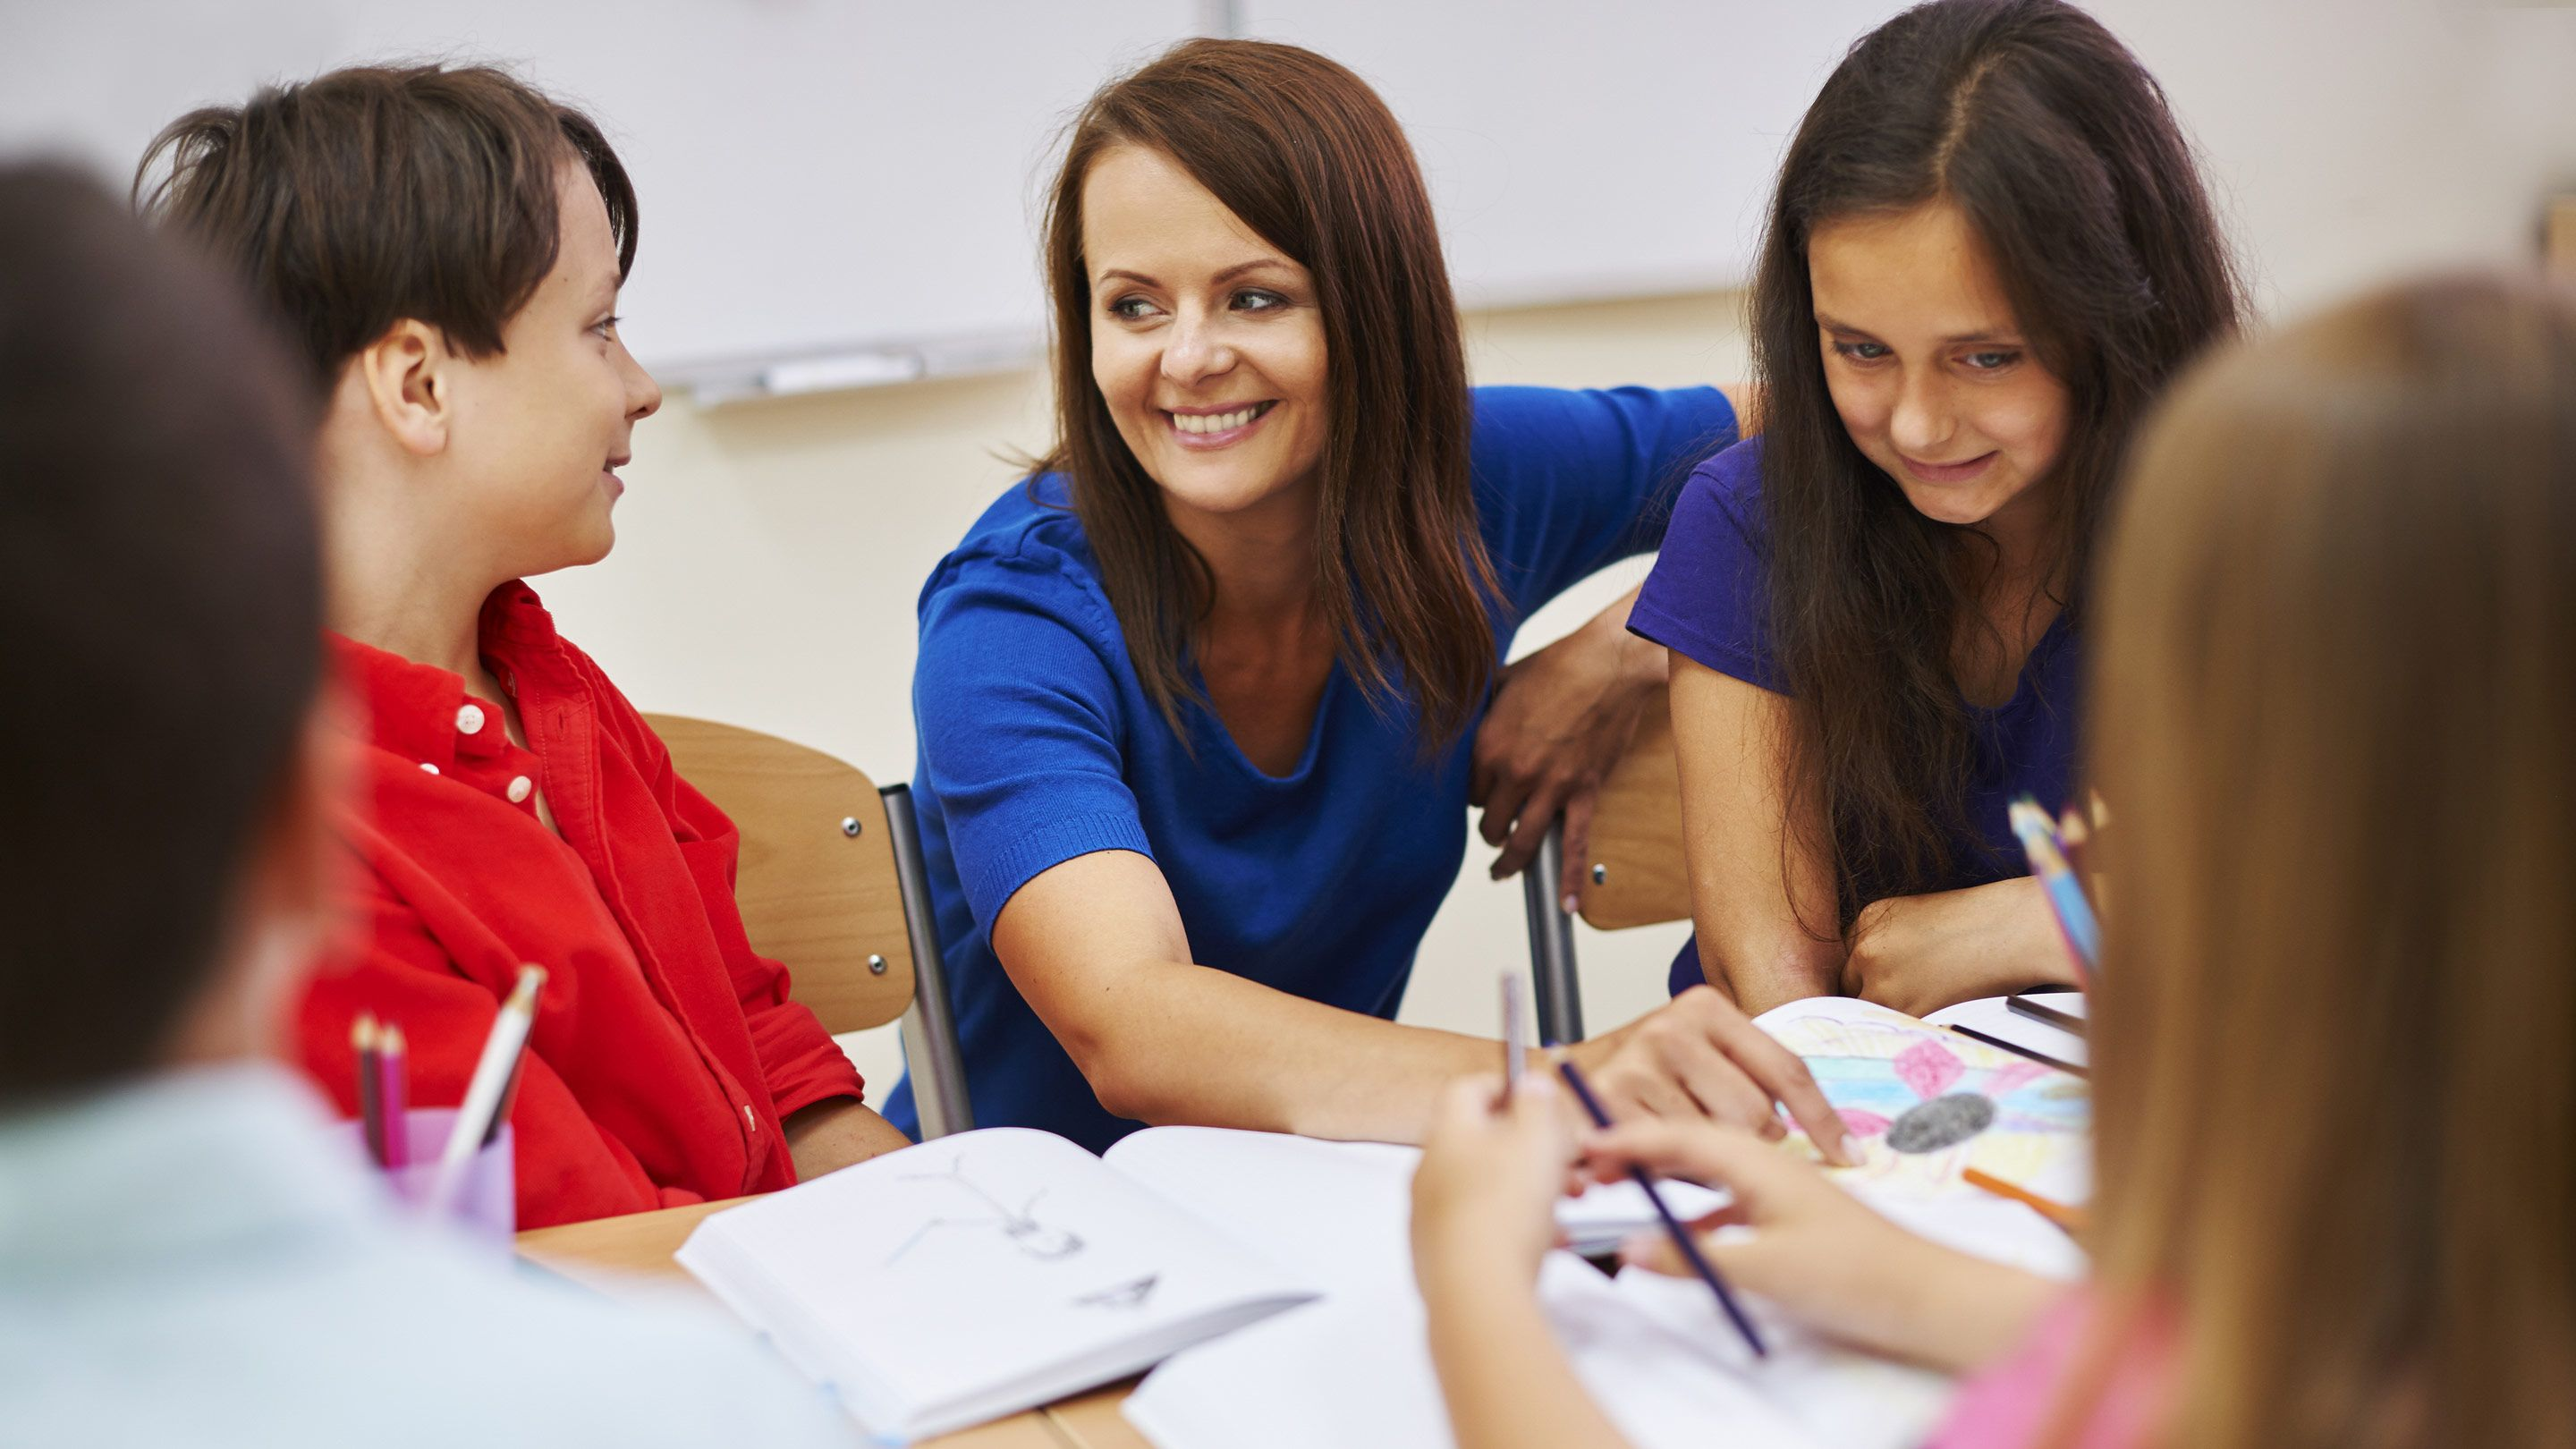 A teacher smiles while talking with students.